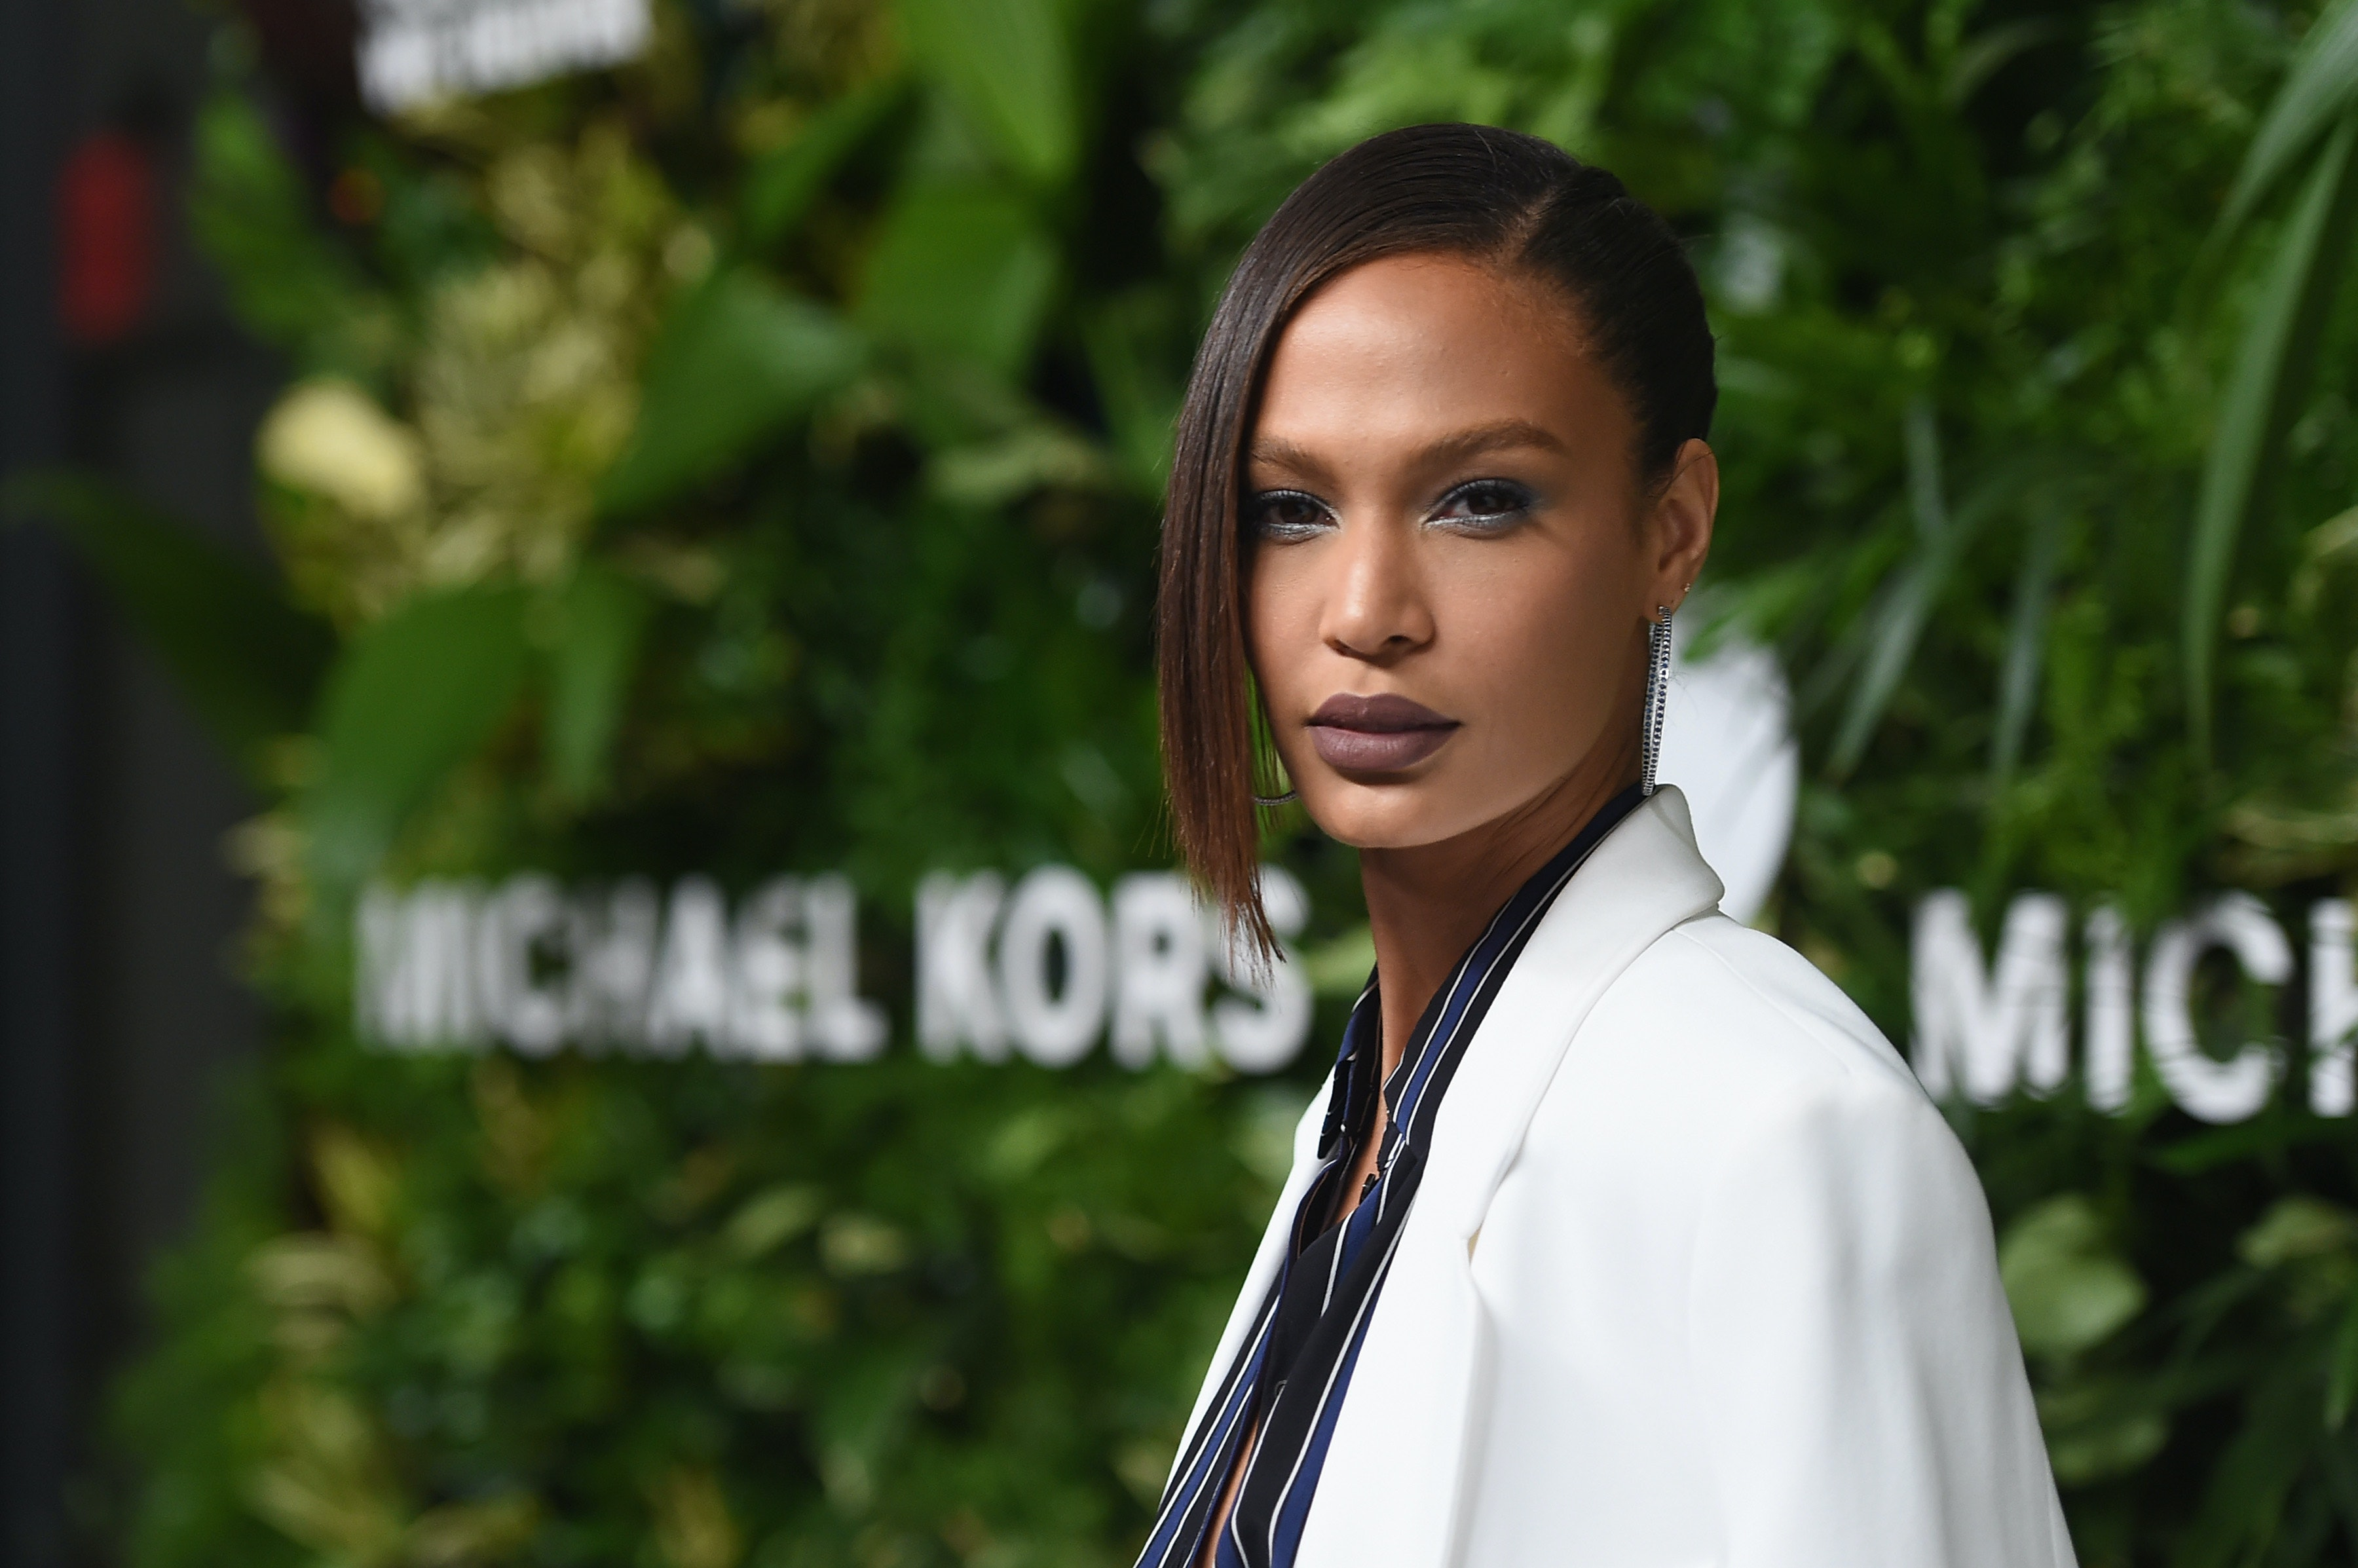 Watch Is Joan Smalls Wearing Invisible Heels in These Paris Fashion WeekPhotos video